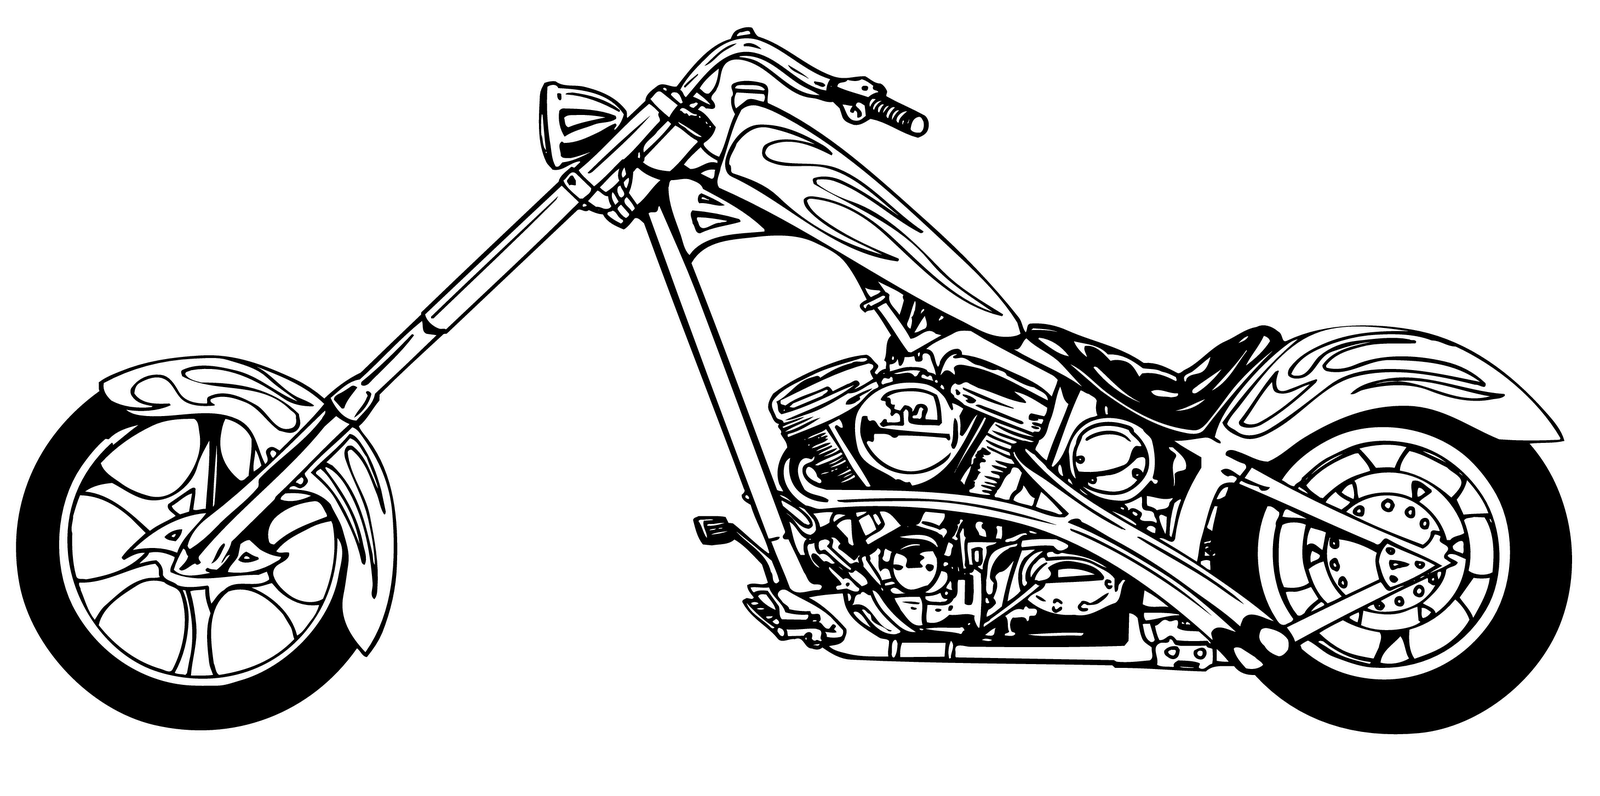 Motorcycle  black and white free motorcycle clipart clip art pictures graphics 2 clipartbarn